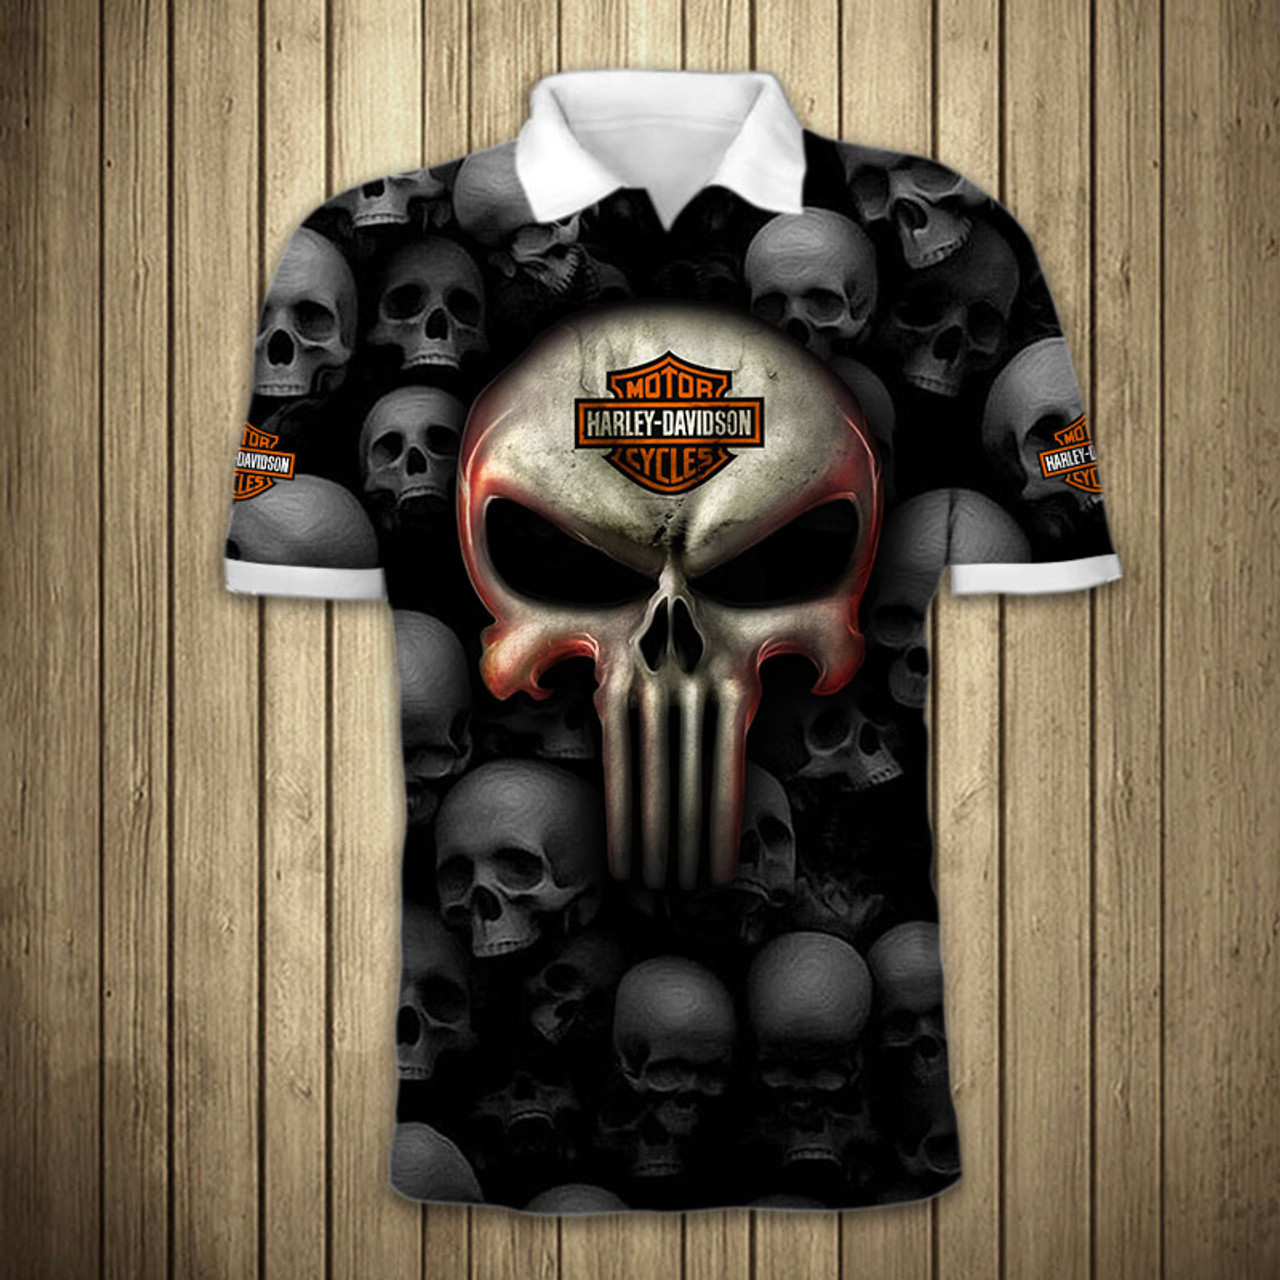 **(OFFICIAL-HARLEY-DAVIDSON-MOTORCYCLE-POLO-SHIRTS & BIG-HARLEY-PUNISHER-SKULL/FEATURING-OFFICIAL-CUSTOM-HARLEY-3D-LOGOS & OFFICIAL-CLASSIC-HARLEY-COLORS/CUSTOM-3D-GRAPHIC-PRINTED-DESIGN/PREMIUM-FASHION-HARLEY-RIDING-BIKER-SPORT-POLO-SHIRTS)**